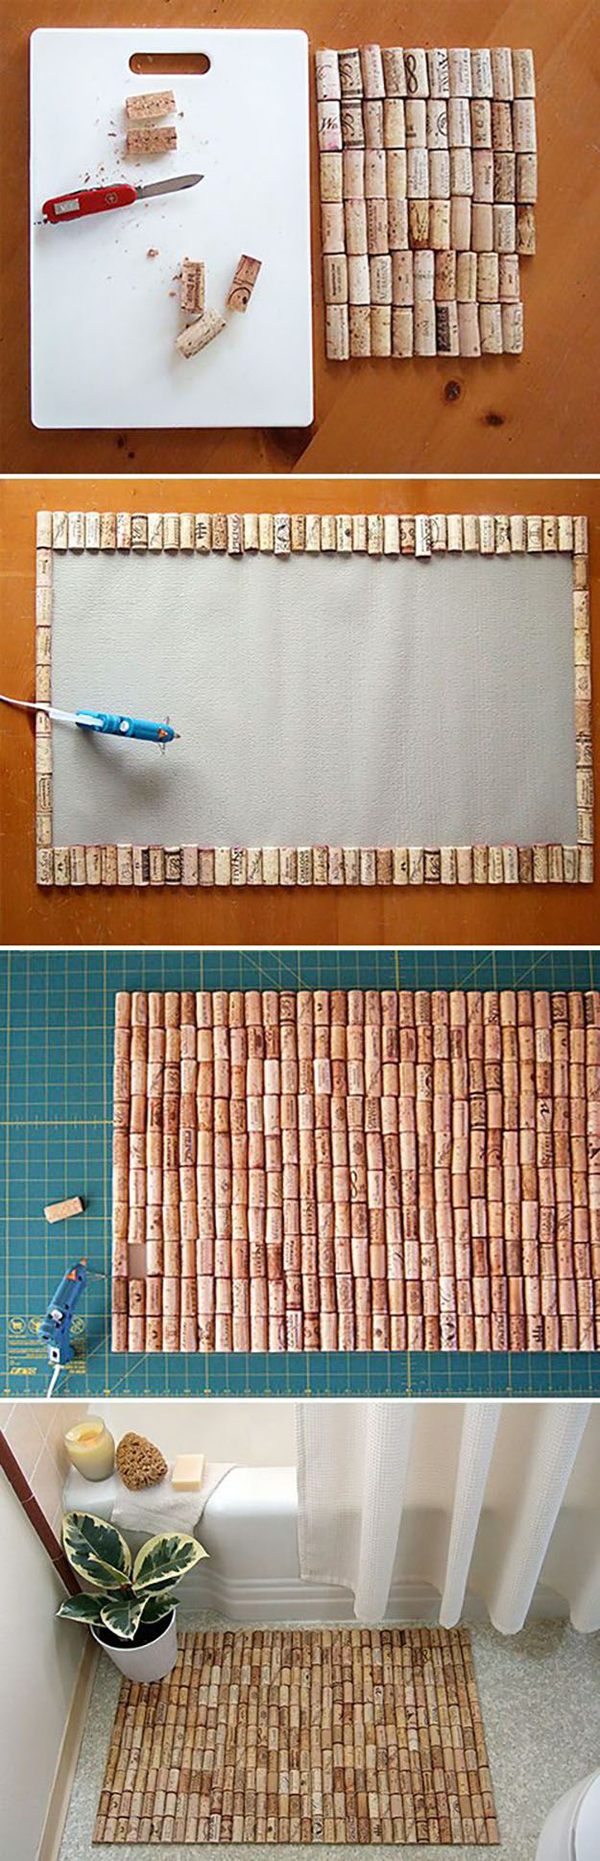 easy-diy-wine-cork-bathmat